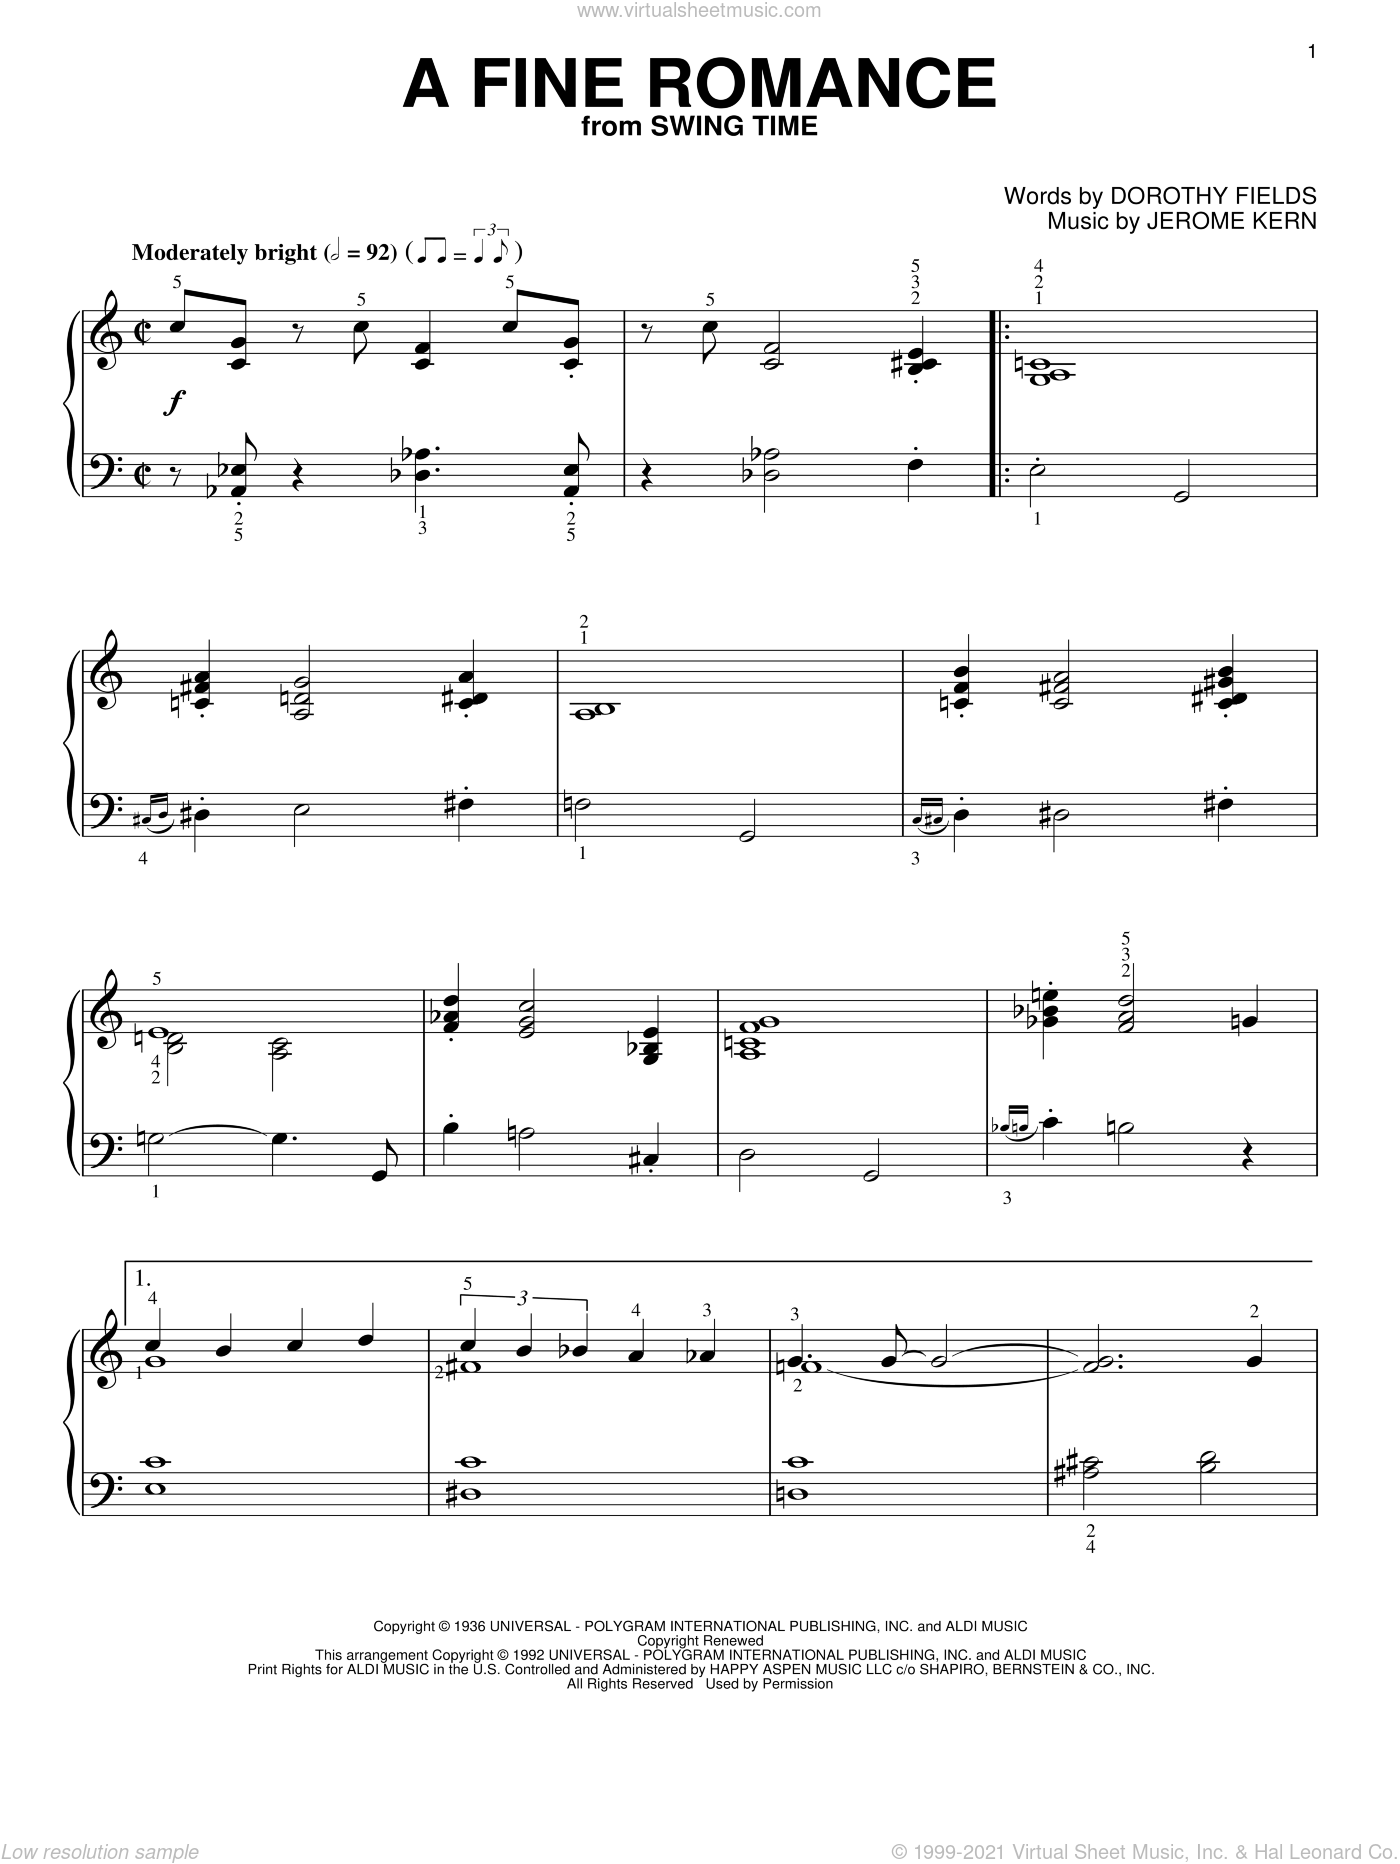 A Fine Romance sheet music for piano solo by Jerome Kern and Dorothy Fields, intermediate skill level